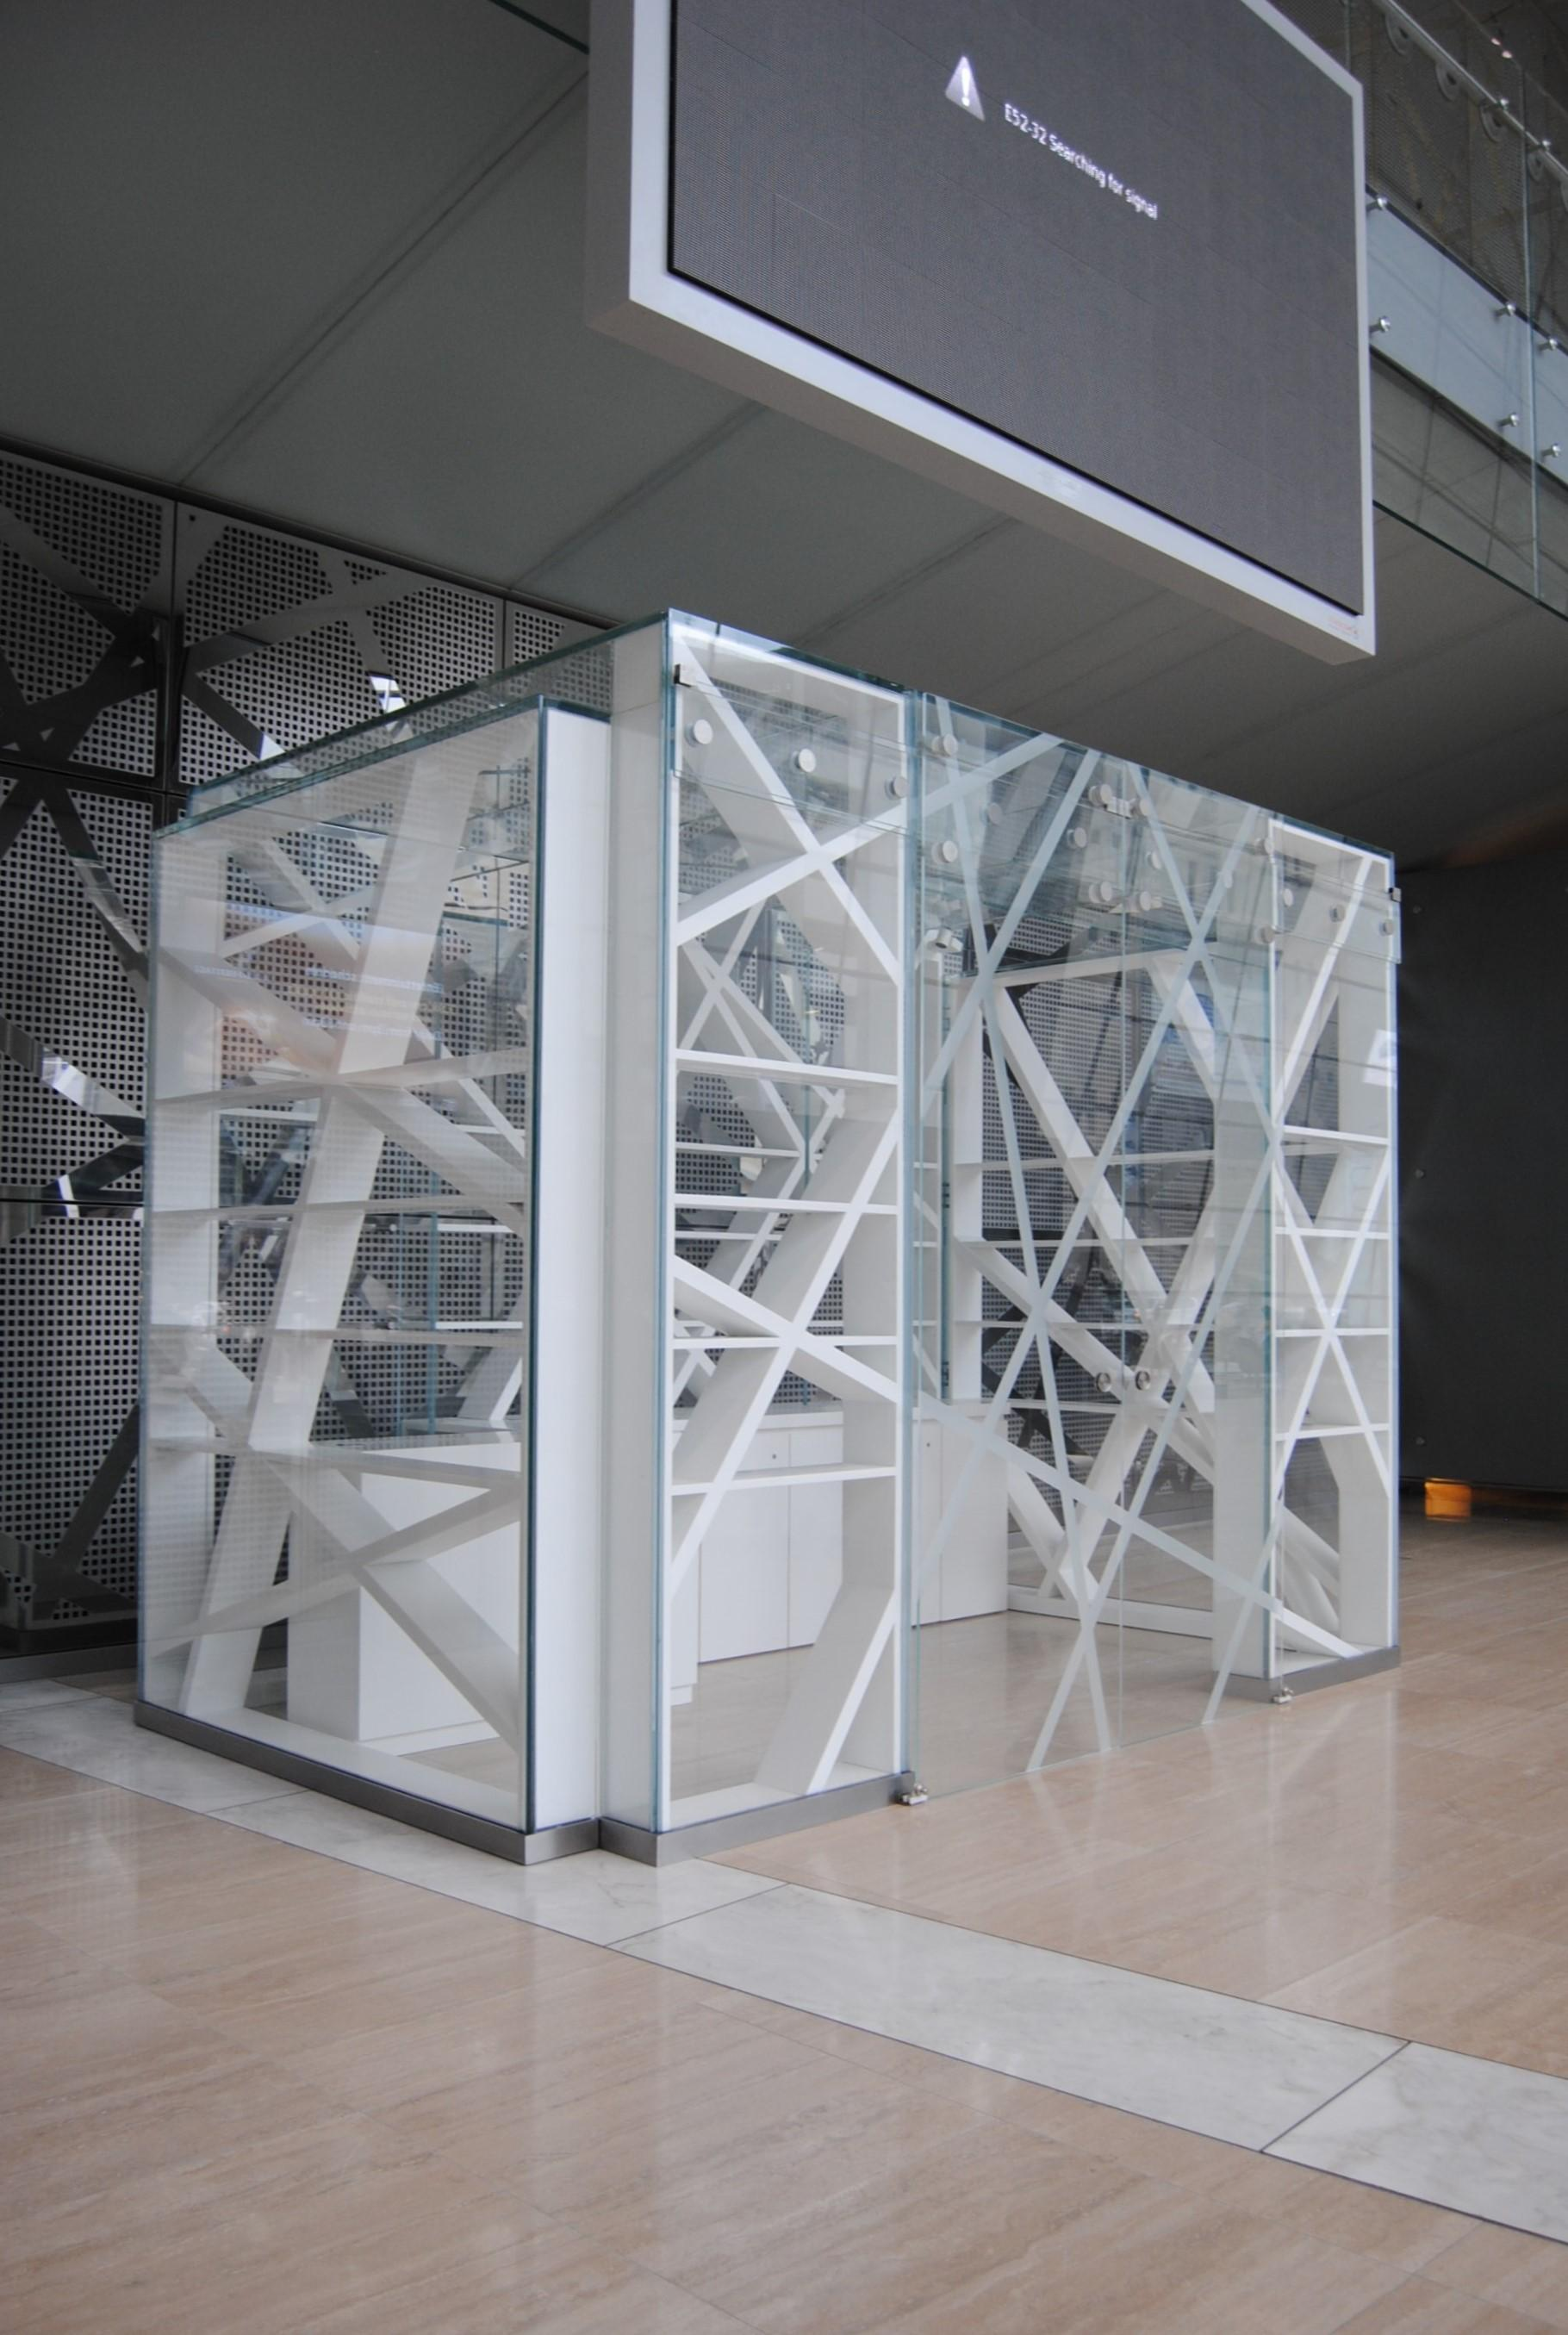 Full glass kiosks